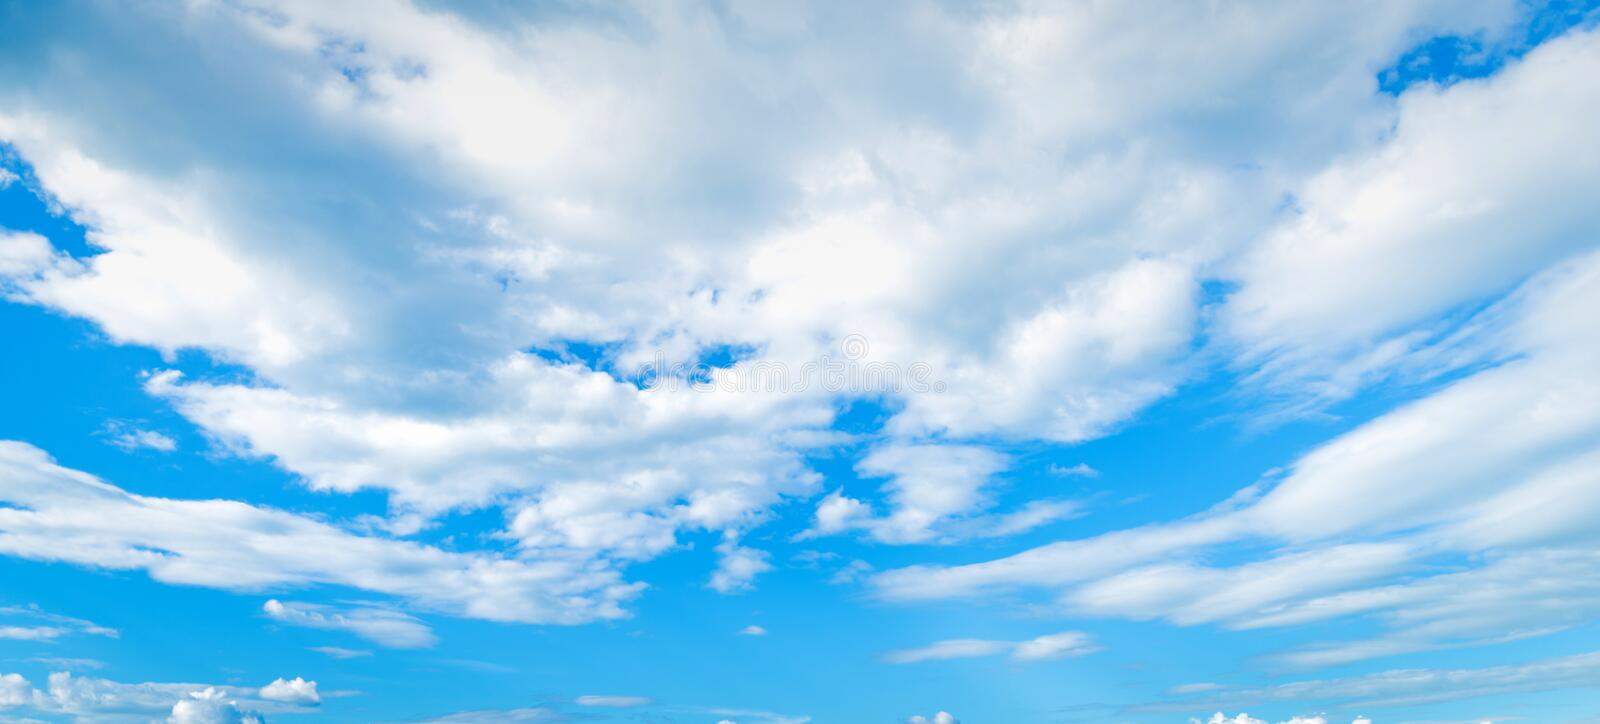 Sky background with big clouds stock photography